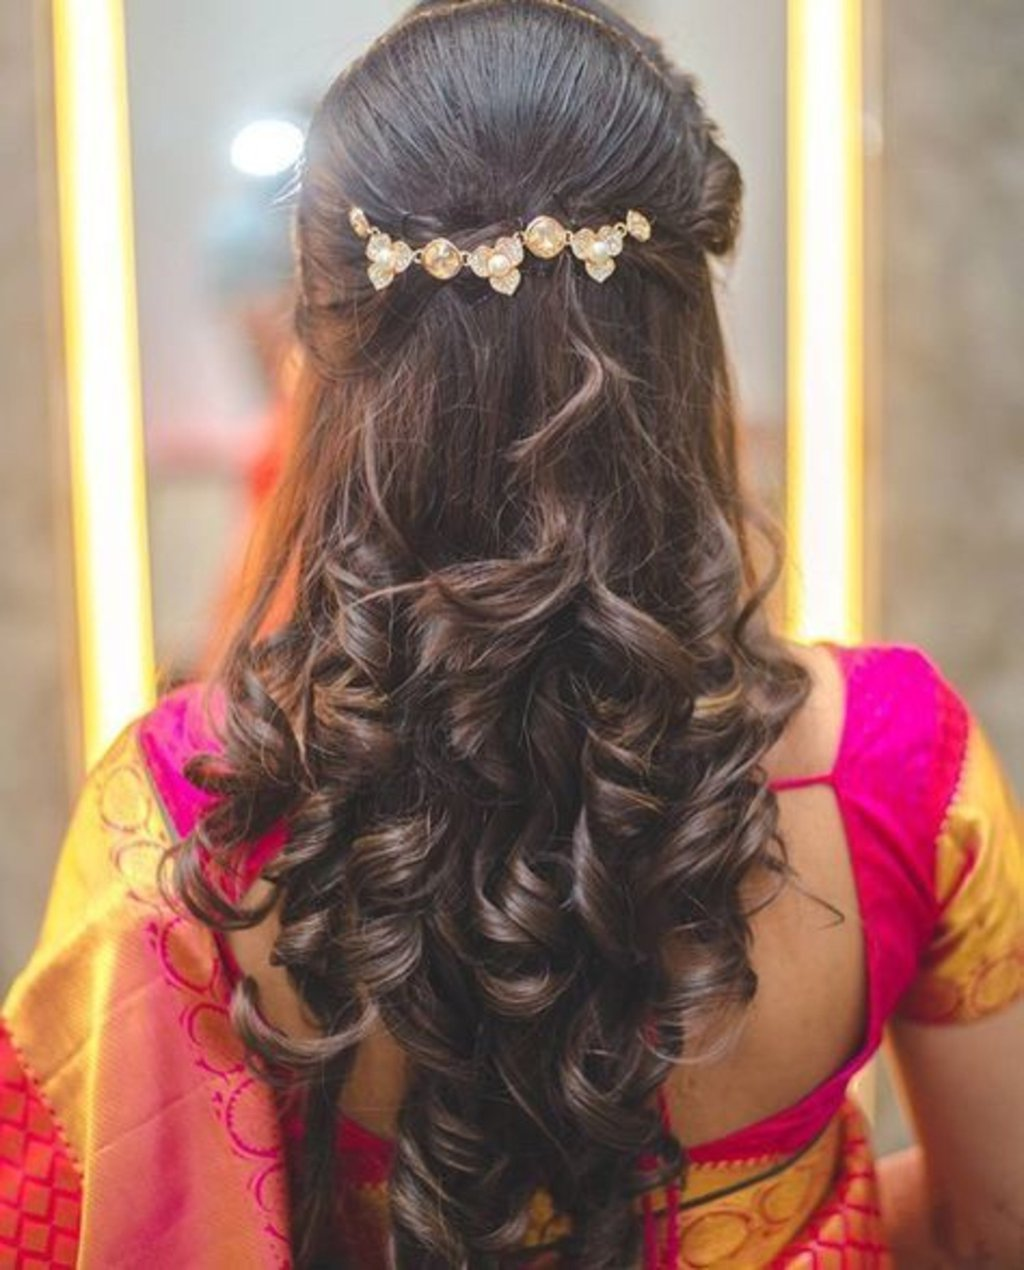 Open-hairstyle for  brides